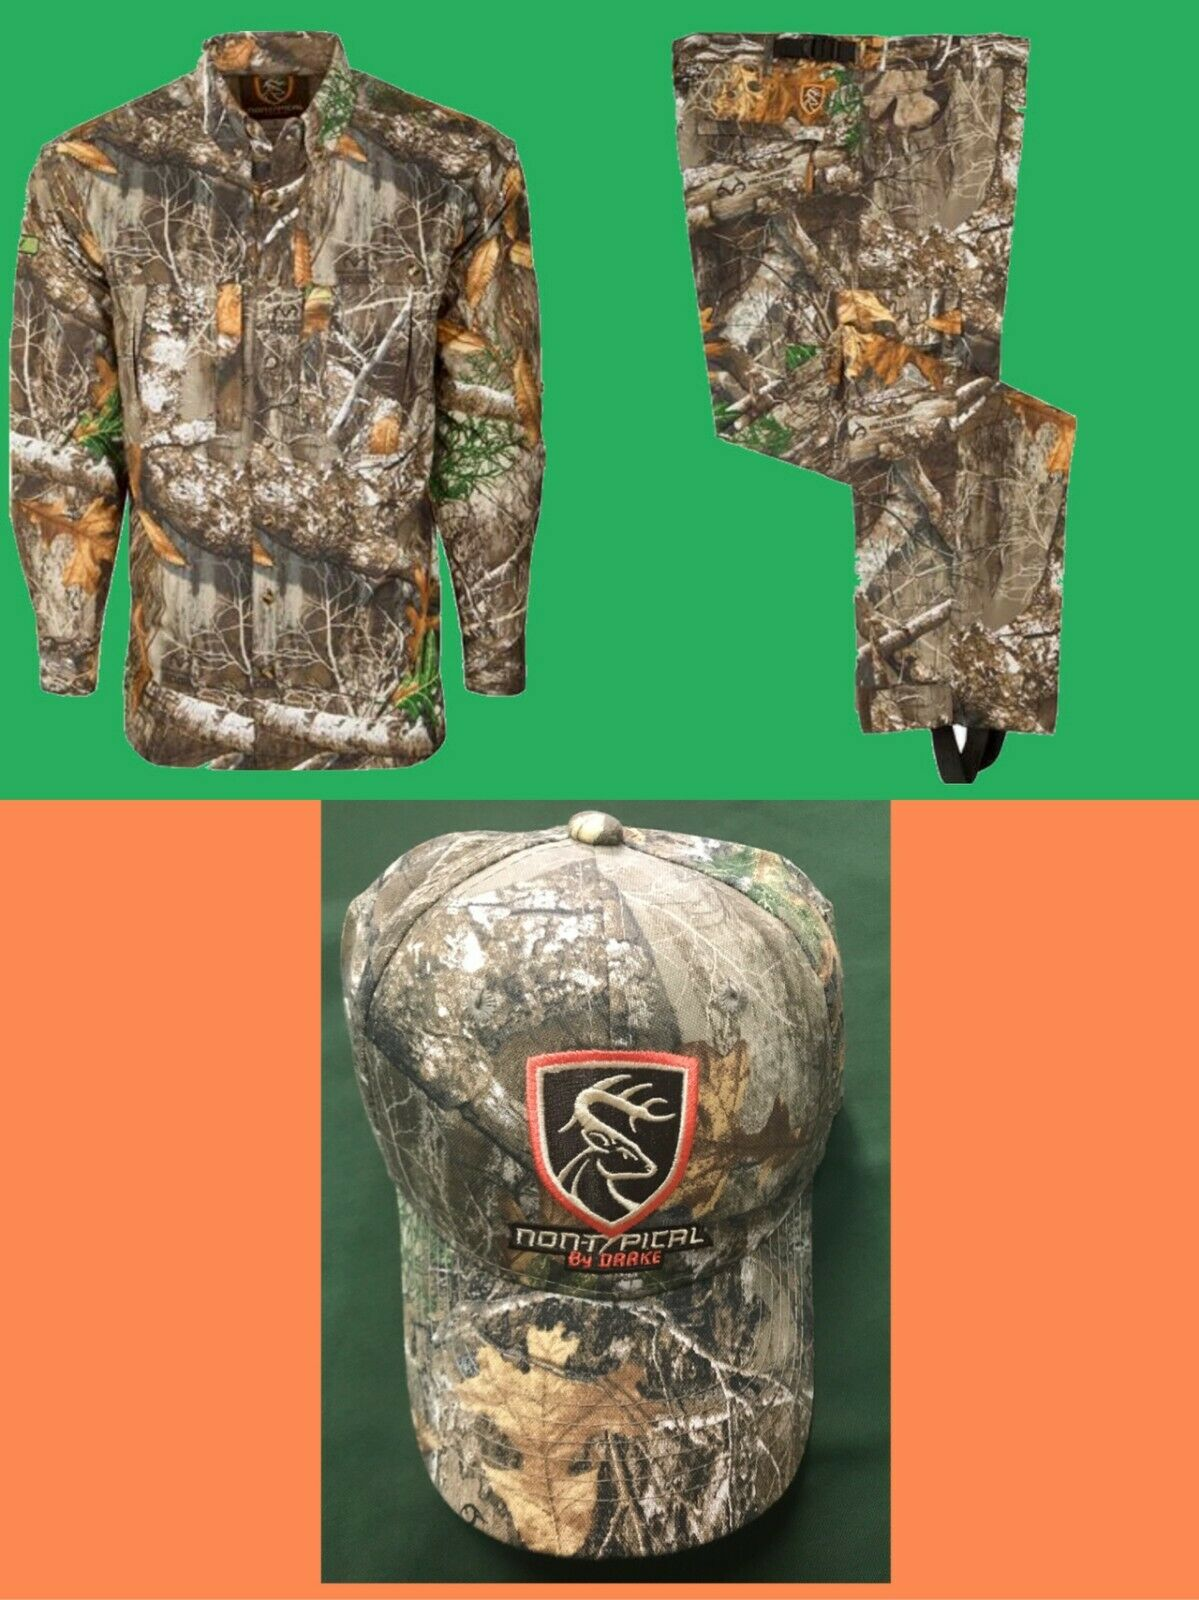 DRAKE NON-TYPICAL Dura-Lite RealTree EDGE COMBO  LARGE Shirt, Pants & Hat NWT  best sale